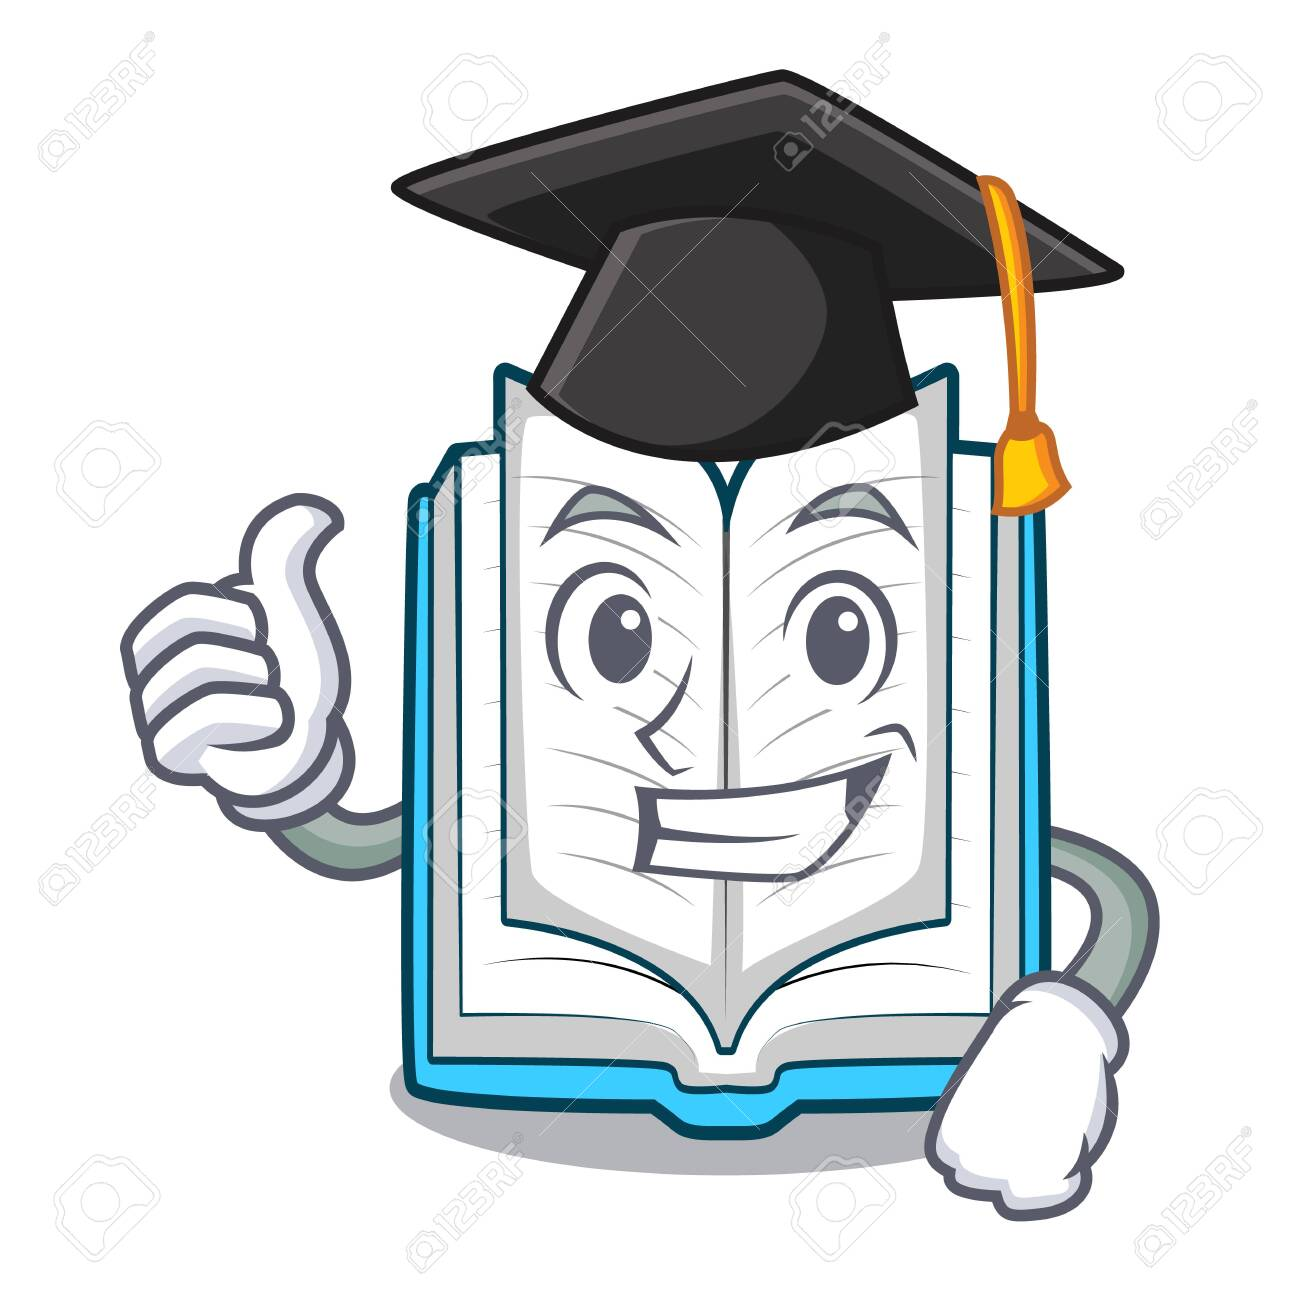 Graduation opened book isolated in the character vector illustration - 124483793